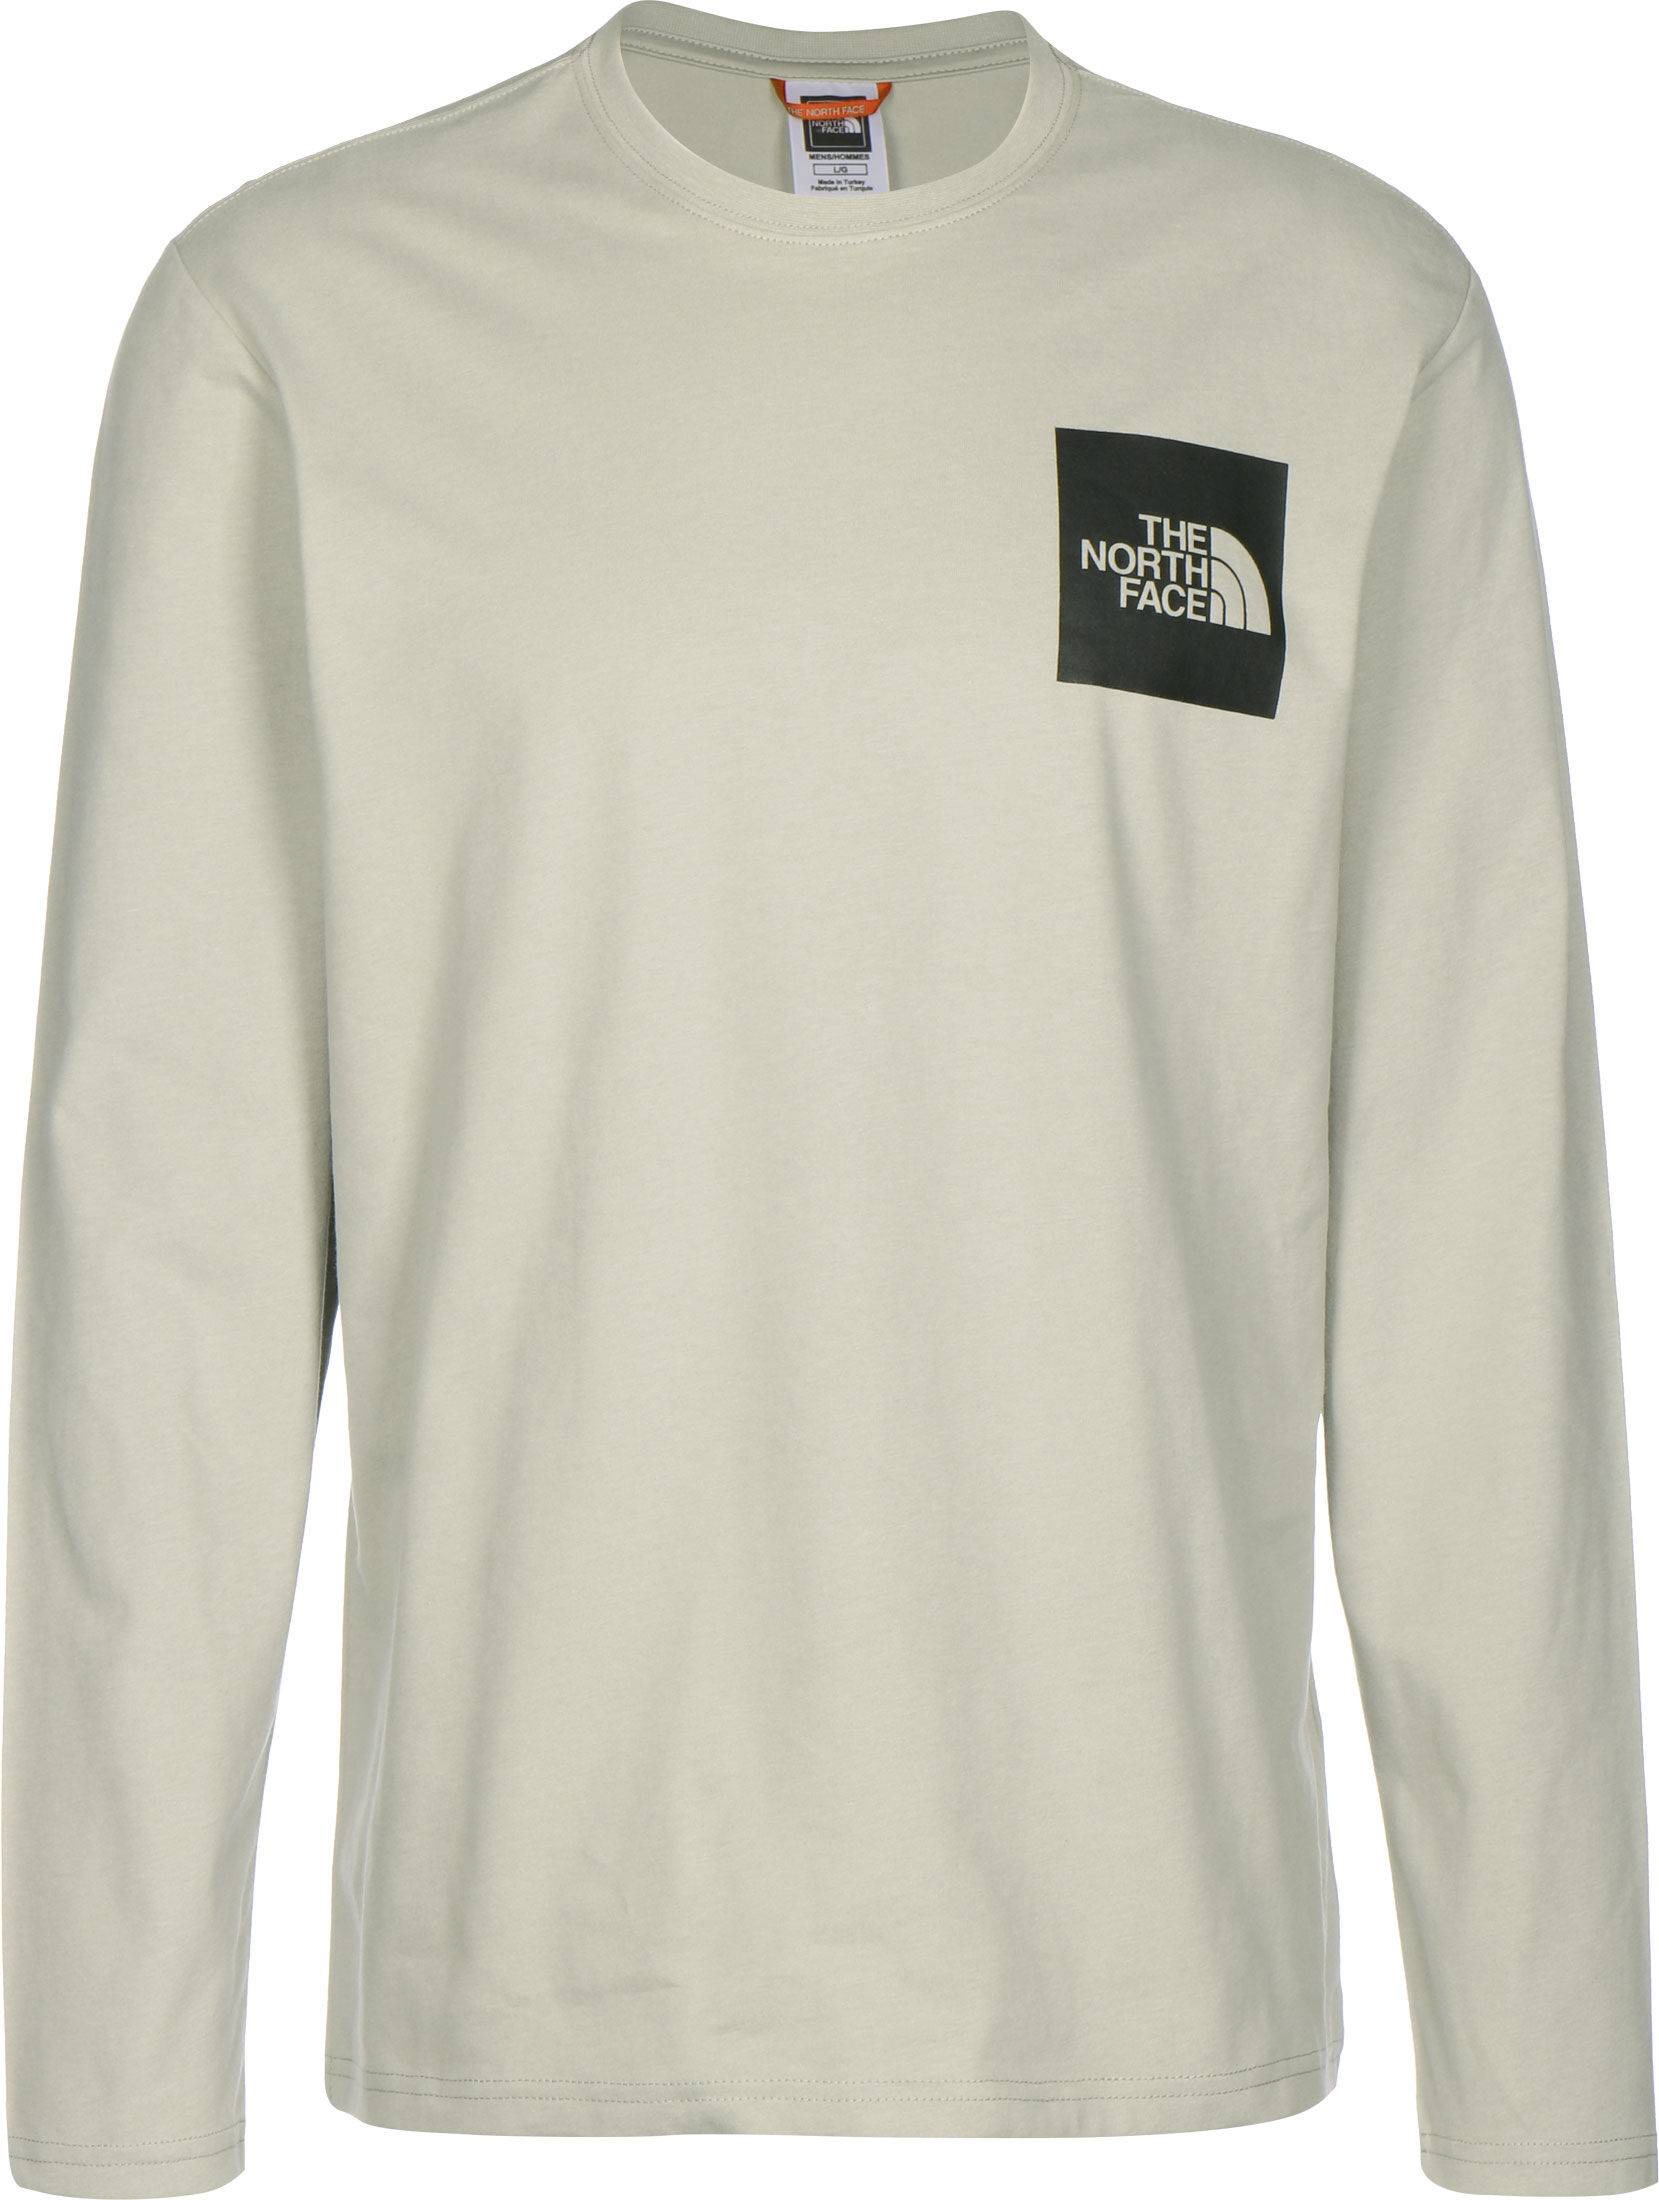 The North Face Fine, taille XL, homme, vert